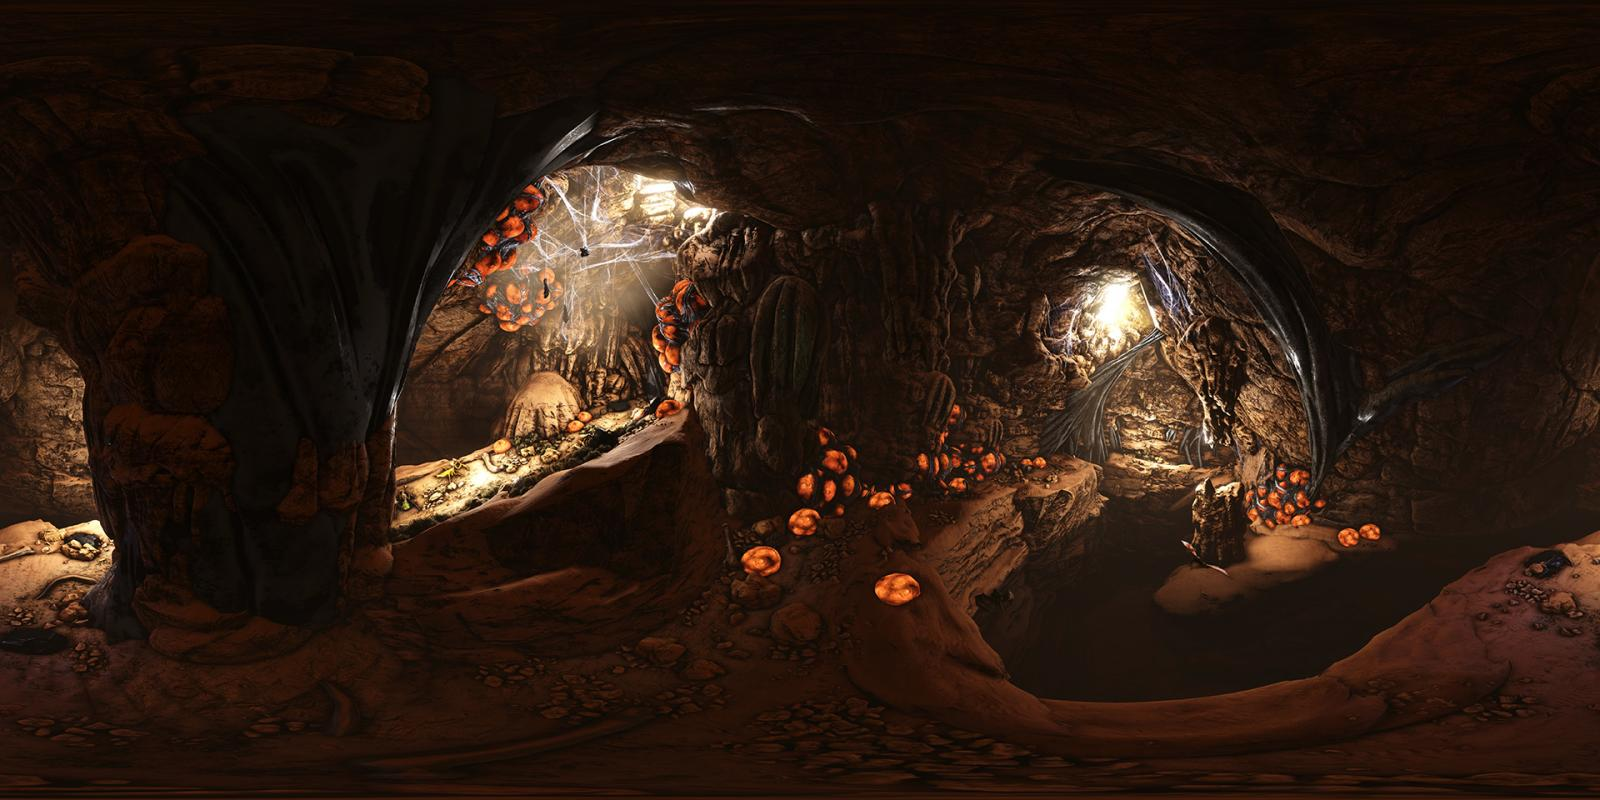 large.5a2a829bd7f48_roguewolf91-SpawningGroundsoftheBrood-Panoramic360Stereoscopic3D.jpg